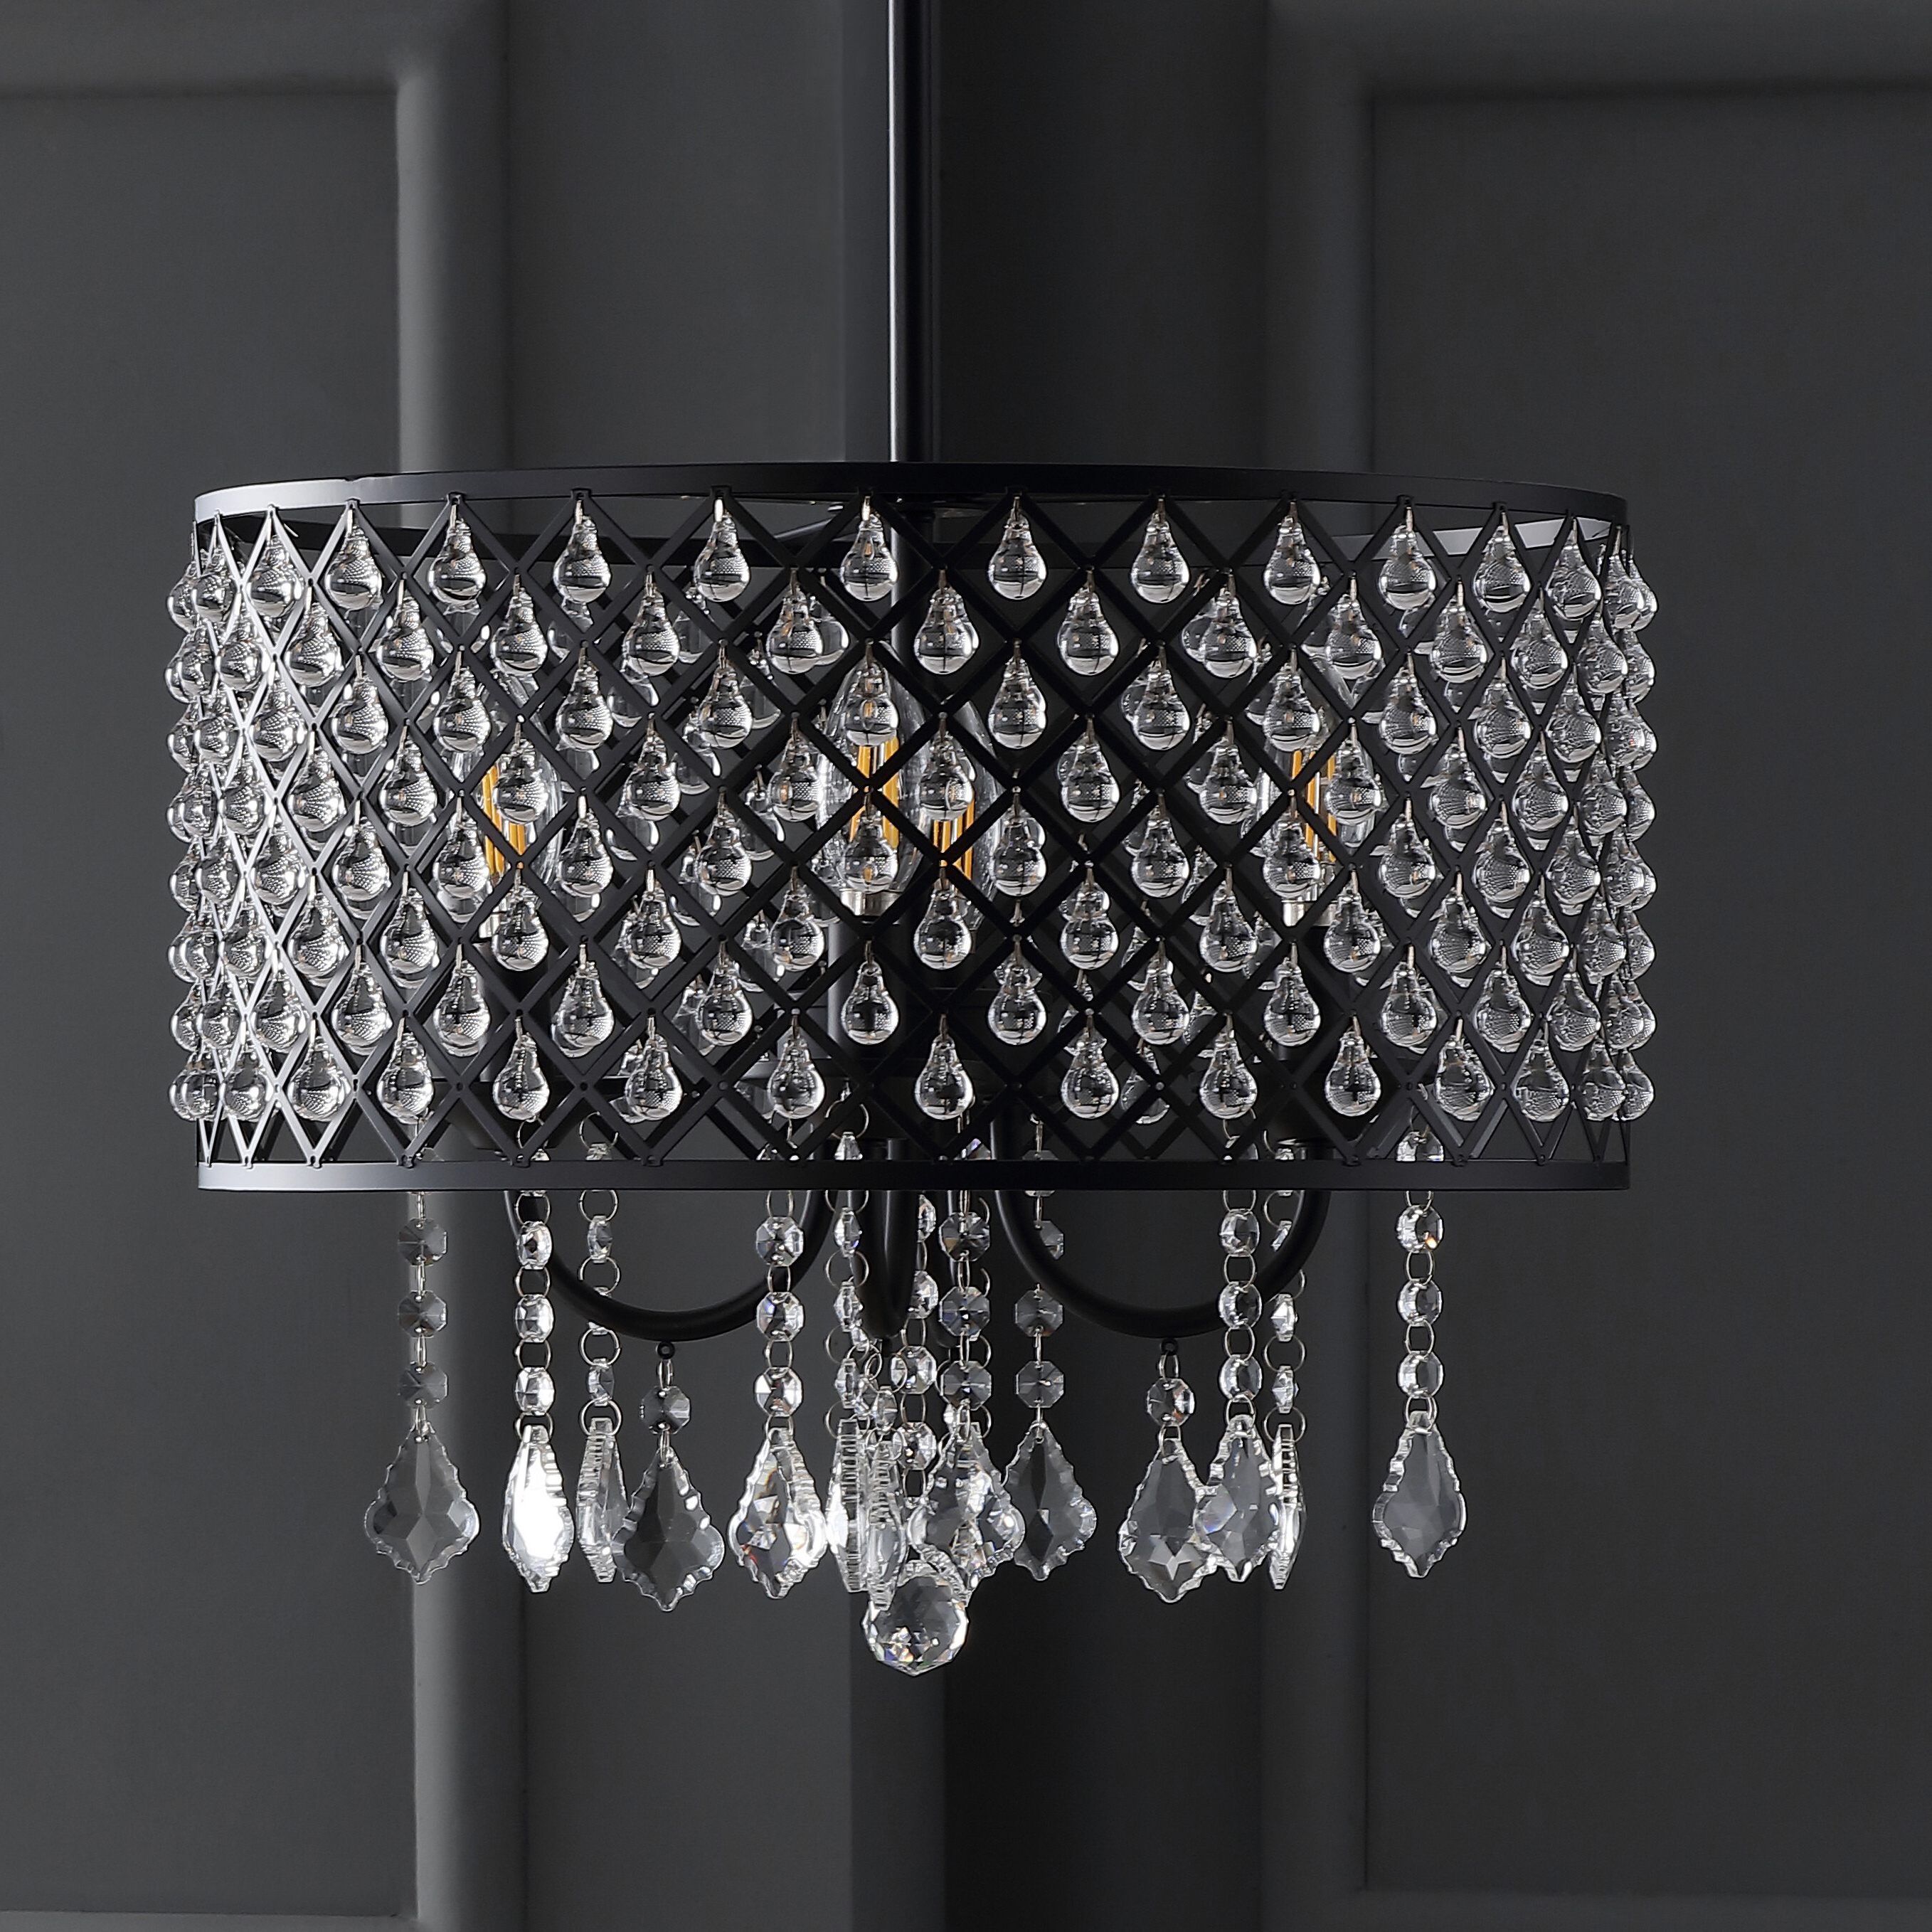 Mckamey 4 Light Crystal Chandeliers Throughout Most Up To Date Collado 4 Light Drum Chandelier (View 17 of 20)